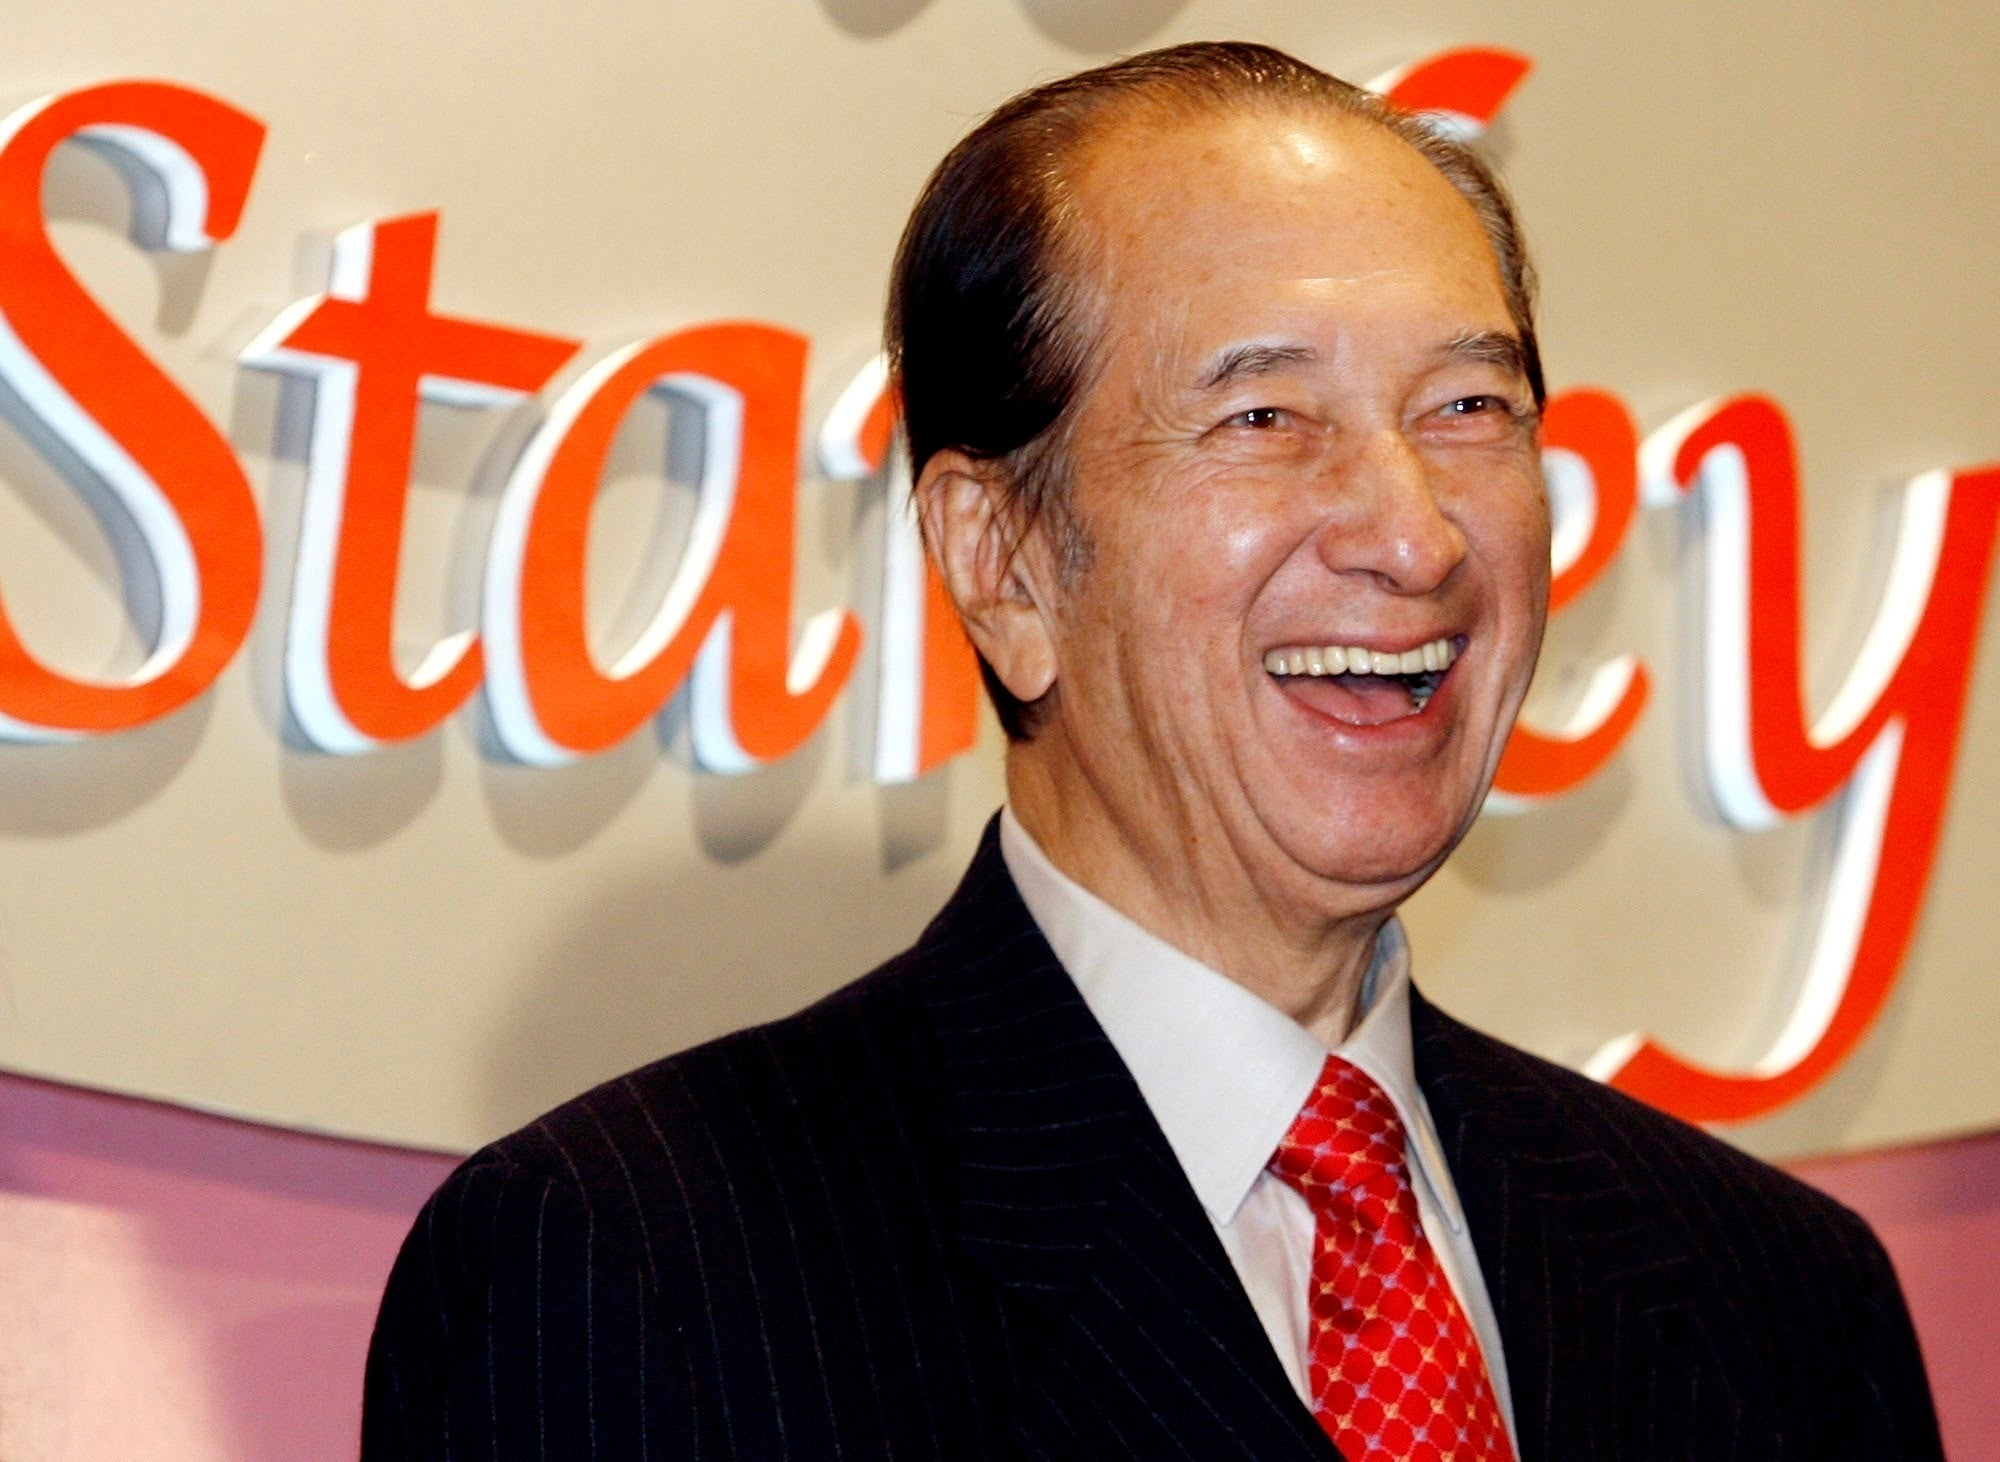 Macao gaming tycoon Stanley Ho has died at 98 - Fox Business